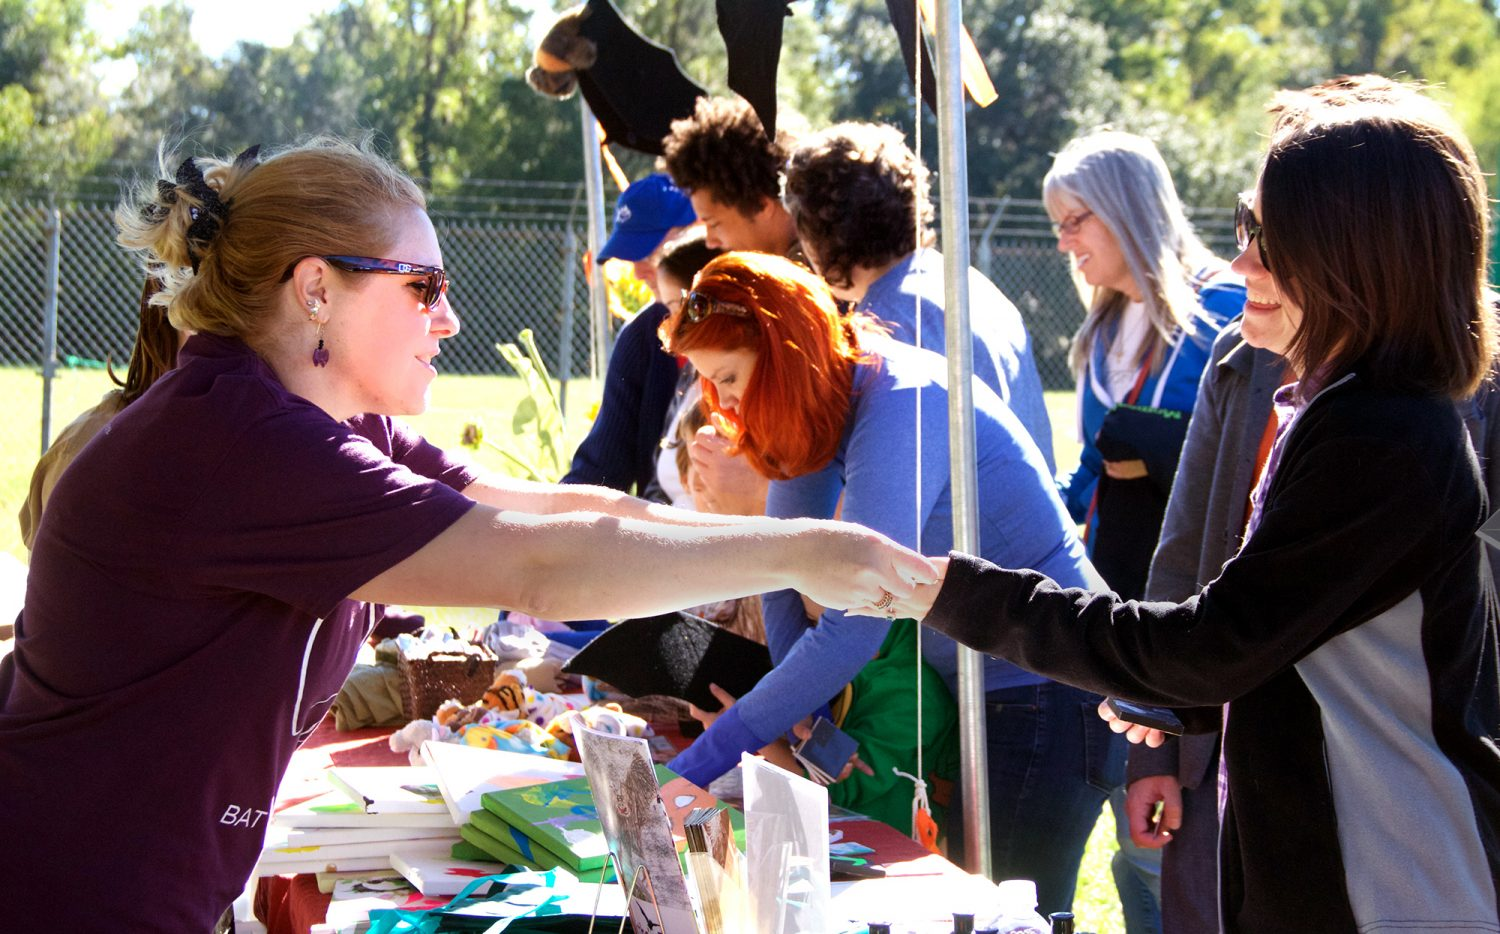 Tracy Pope (left), a program coordinator at Lubee, sells bat toys, crafts and arts at Saturday's festival. (Vedrana Damjanovic/WUFT News)